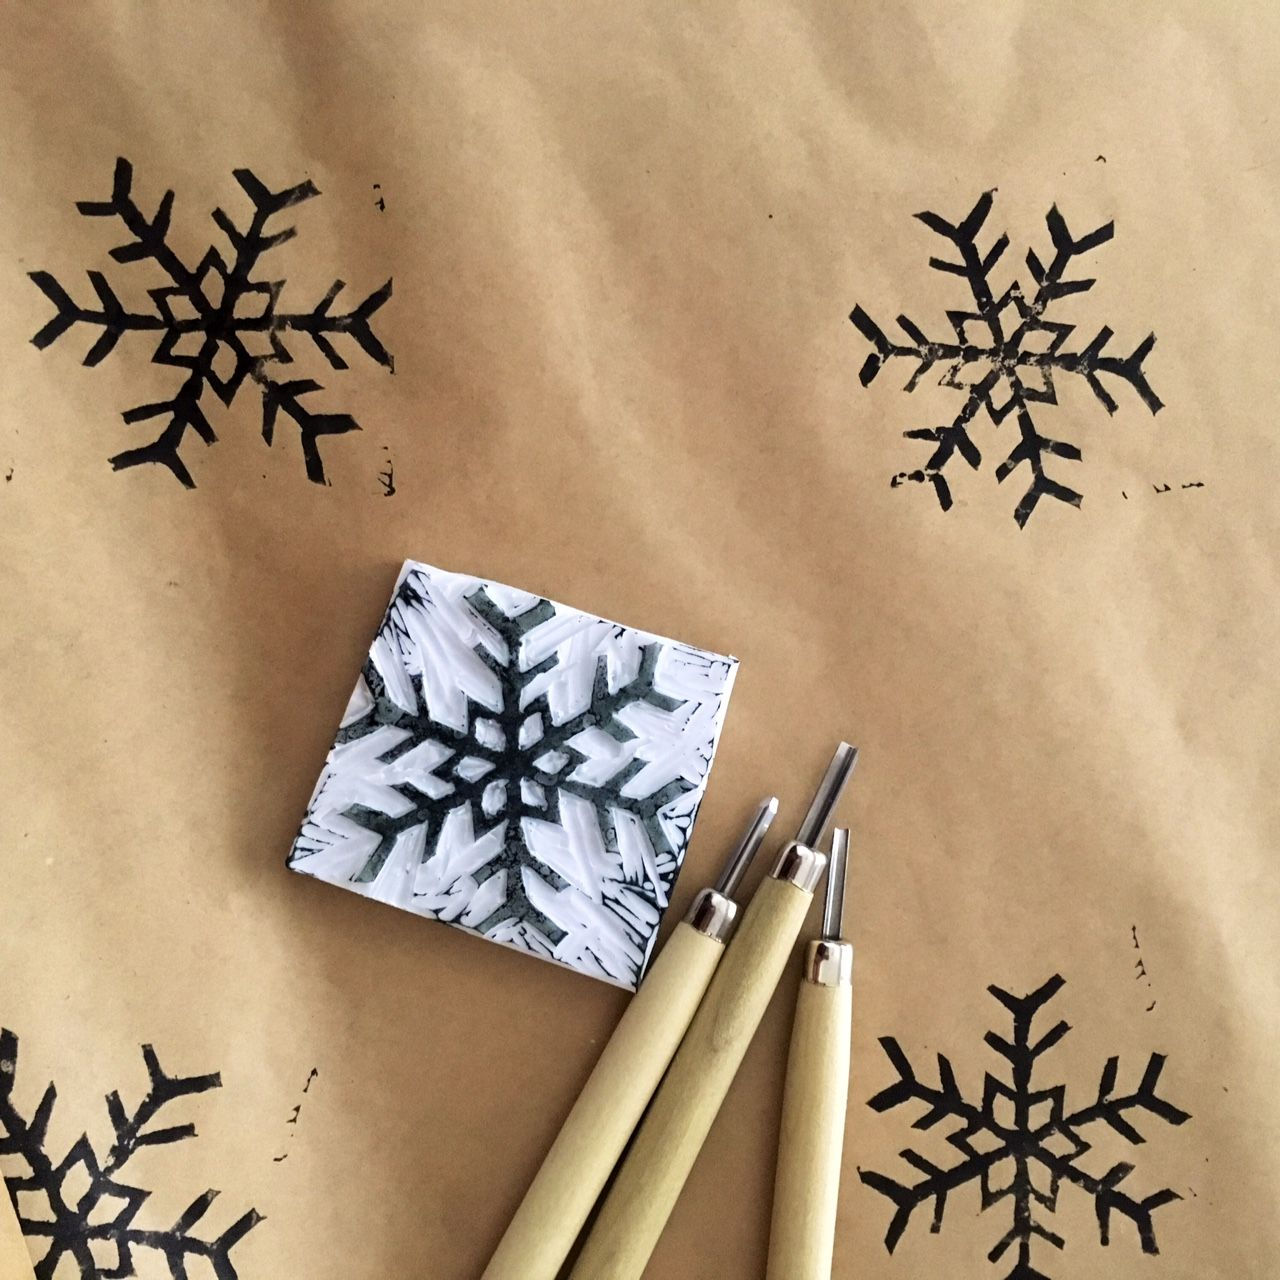 Join our 2016 Christmas Crafty Party where you will learn how to carve stamps and make your own wrapping paper. Fun, easy and environmentally friendly!